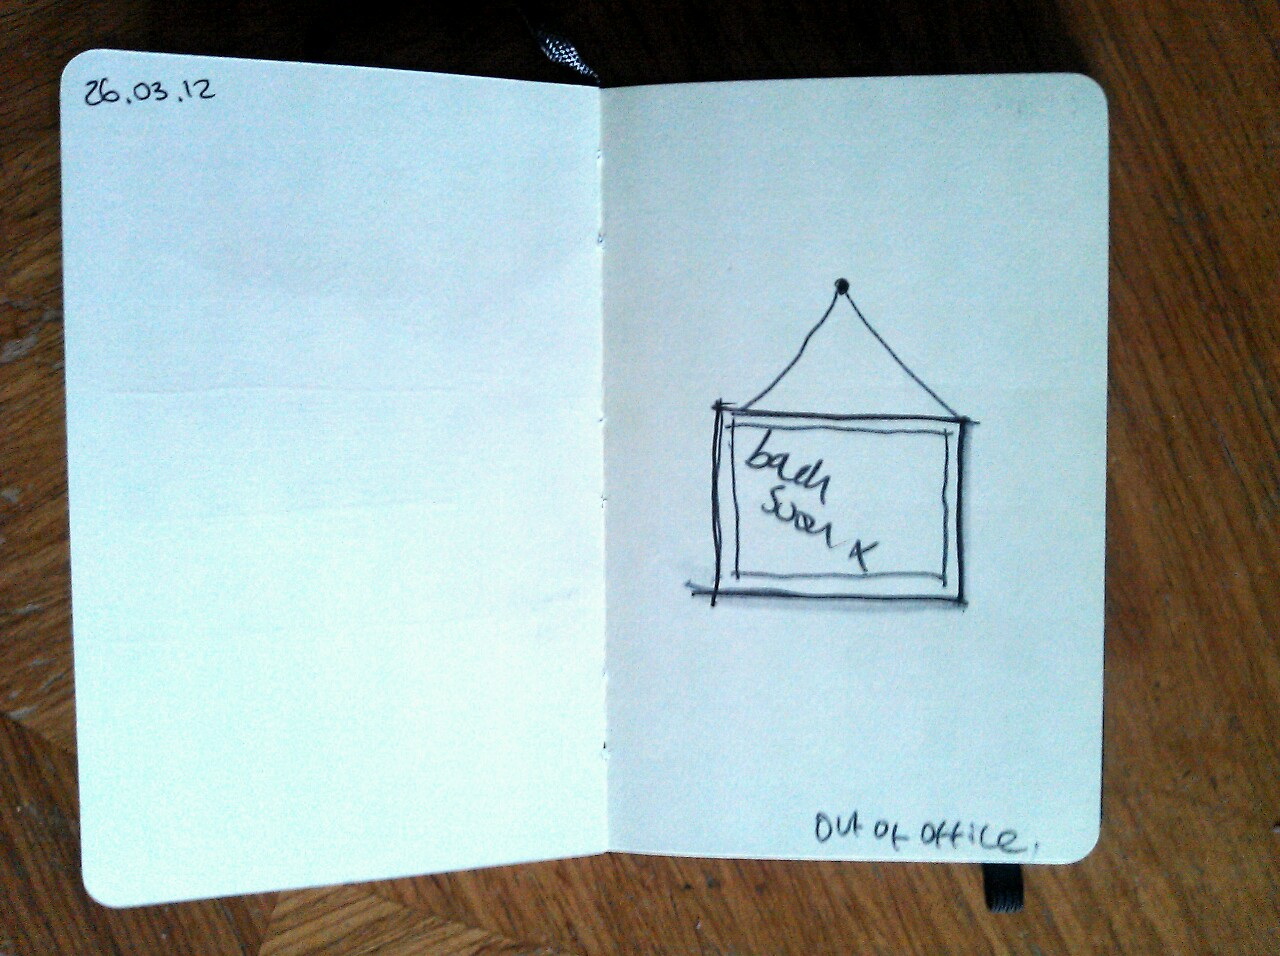 365 drawings later … day 55 … out of the office (I'm afraid I'm snubbing the wee moleskine tonight, the drawing board is lonely)